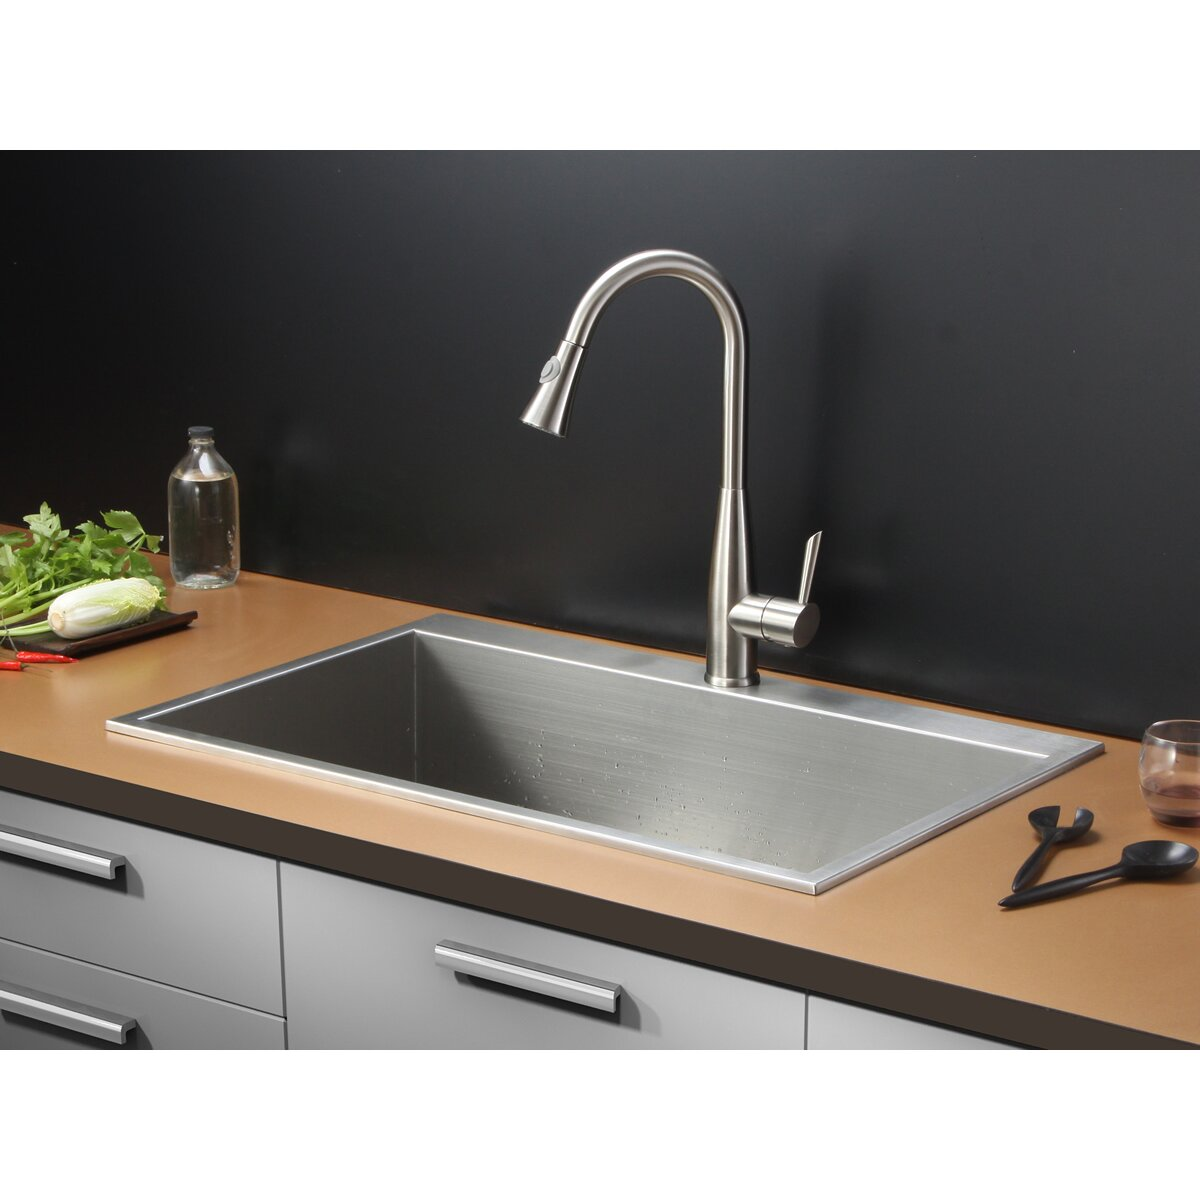 Kitchen Sinks Ruvati Part #: RVH8000 SKU: RUVT1009